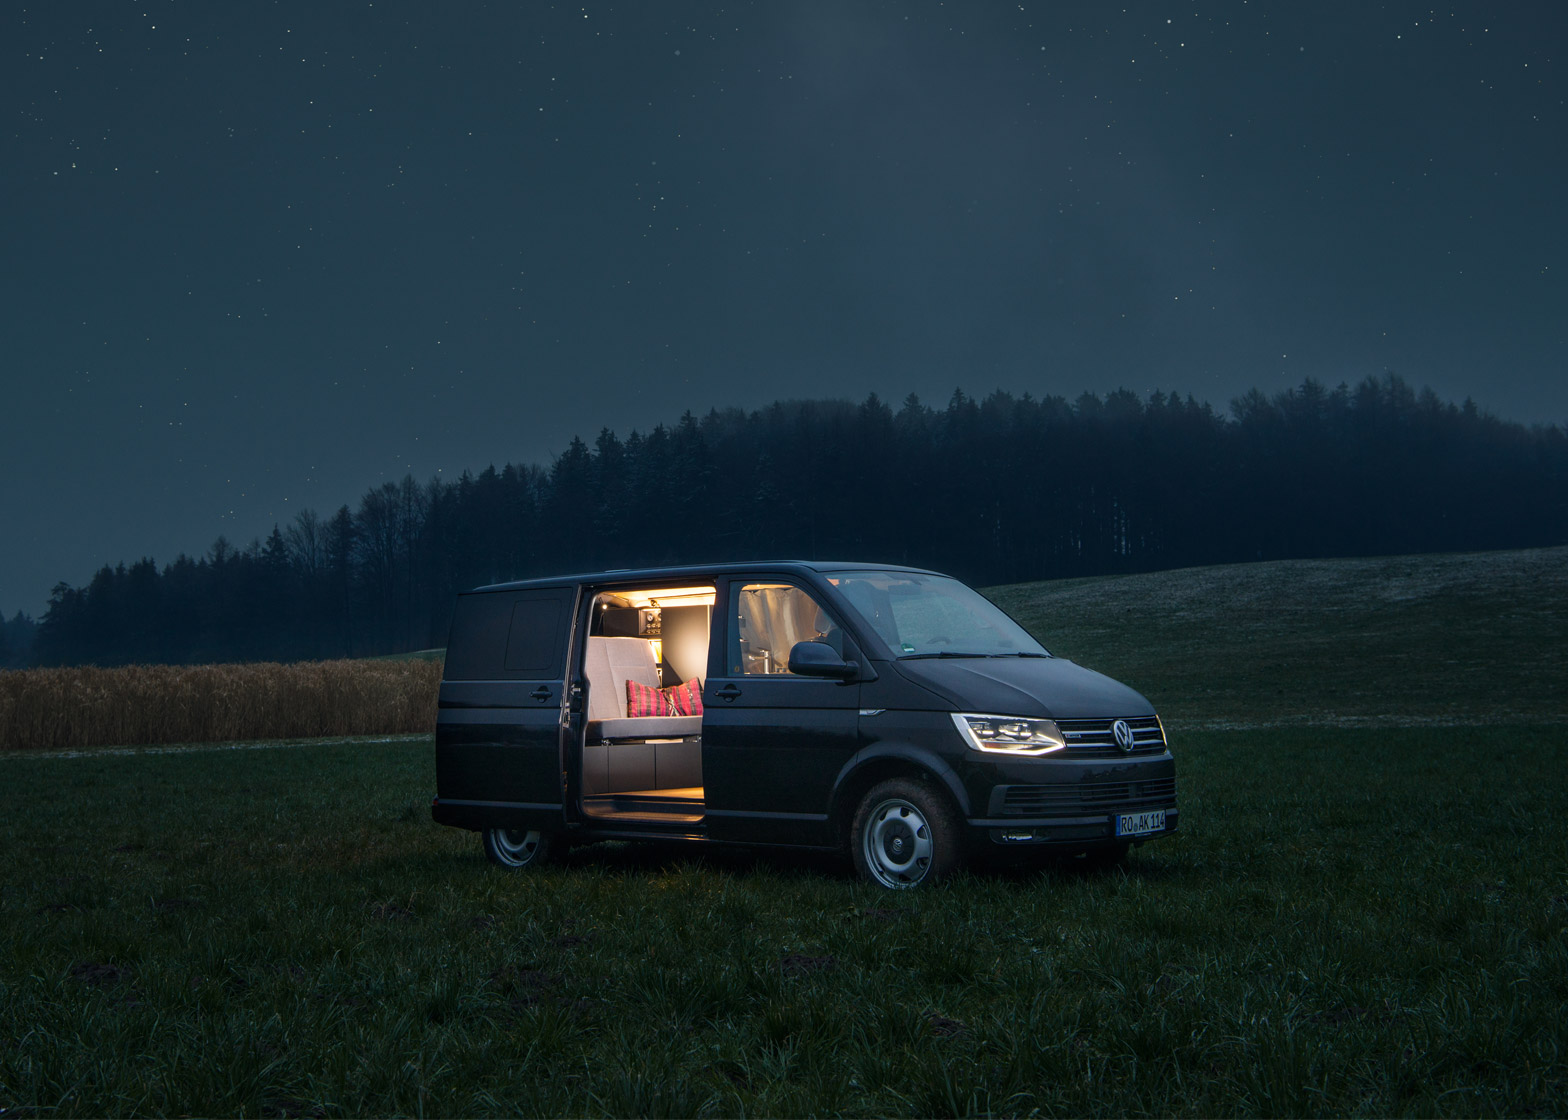 Nils Holger Moormann Designs Minimal Interior For Vw Bus